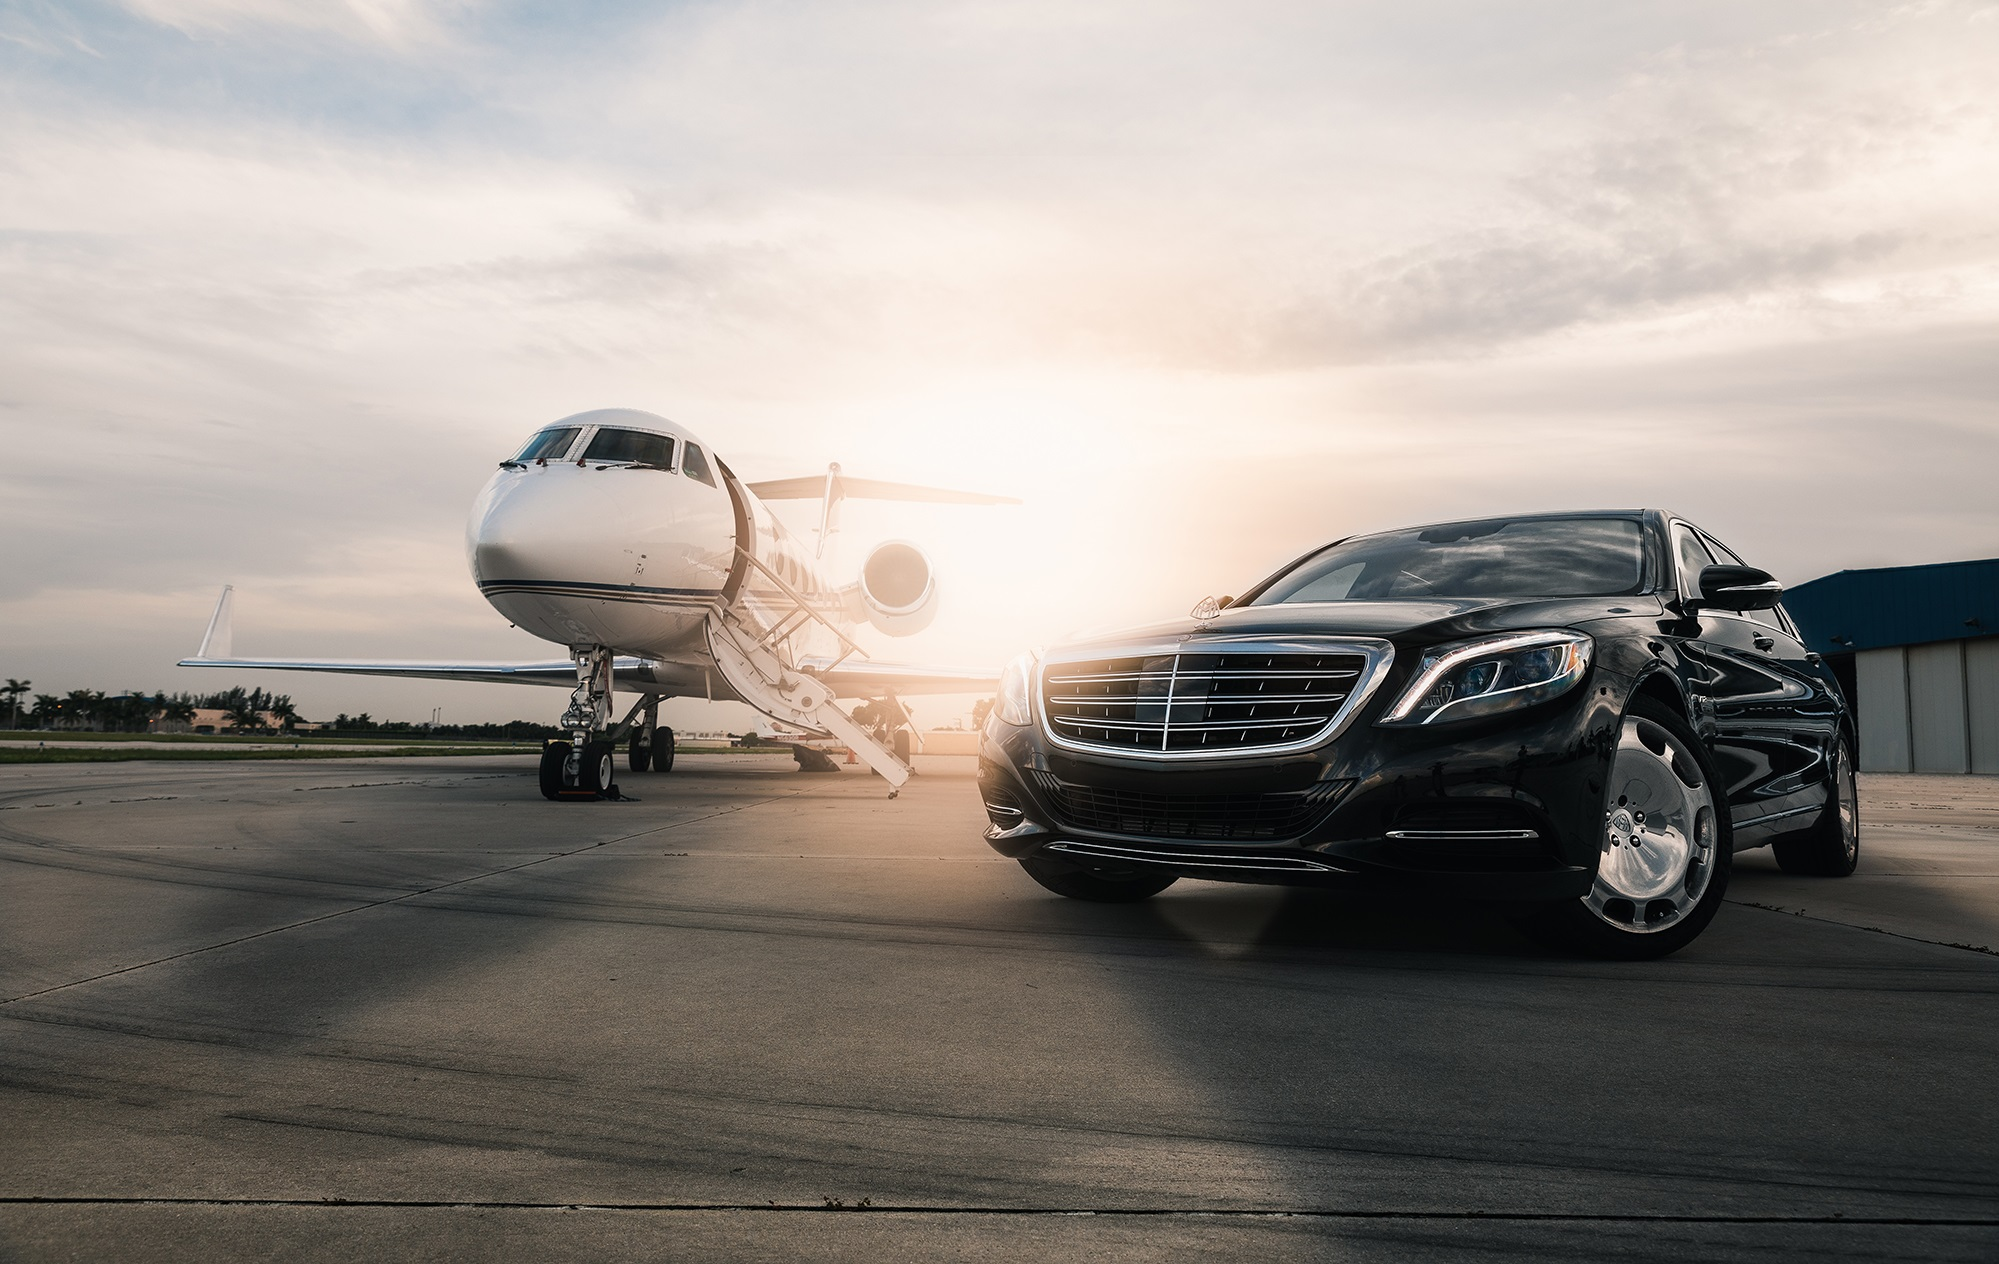 Airport Luxury Sedan Service - Hire Famous Limo Service and let us give you a ride to and from Los Angeles International Airport. Travel in style in our luxury SUV service and premium sedans.